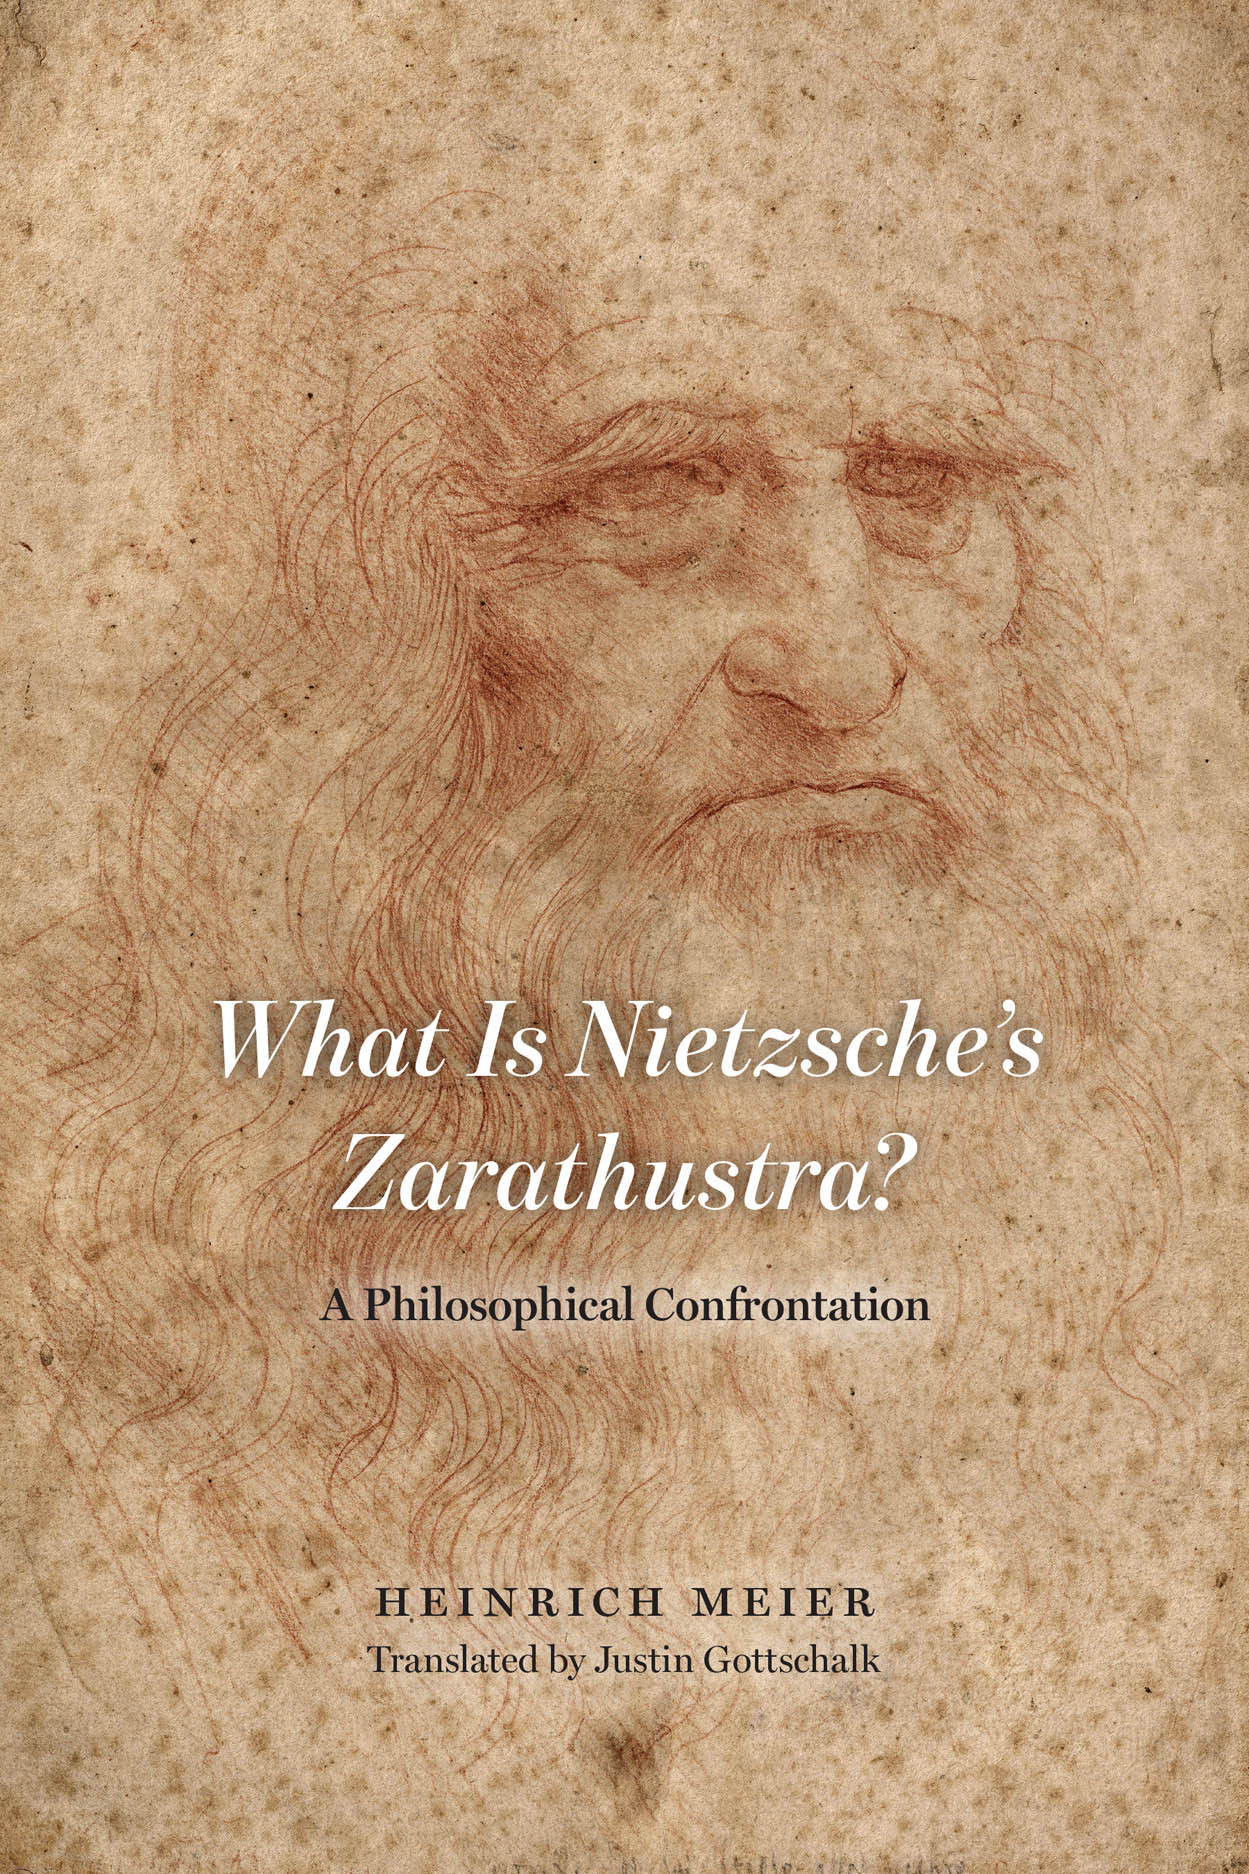 What is Nietzsche's Zarathustra?: A Philosophical Confrontation